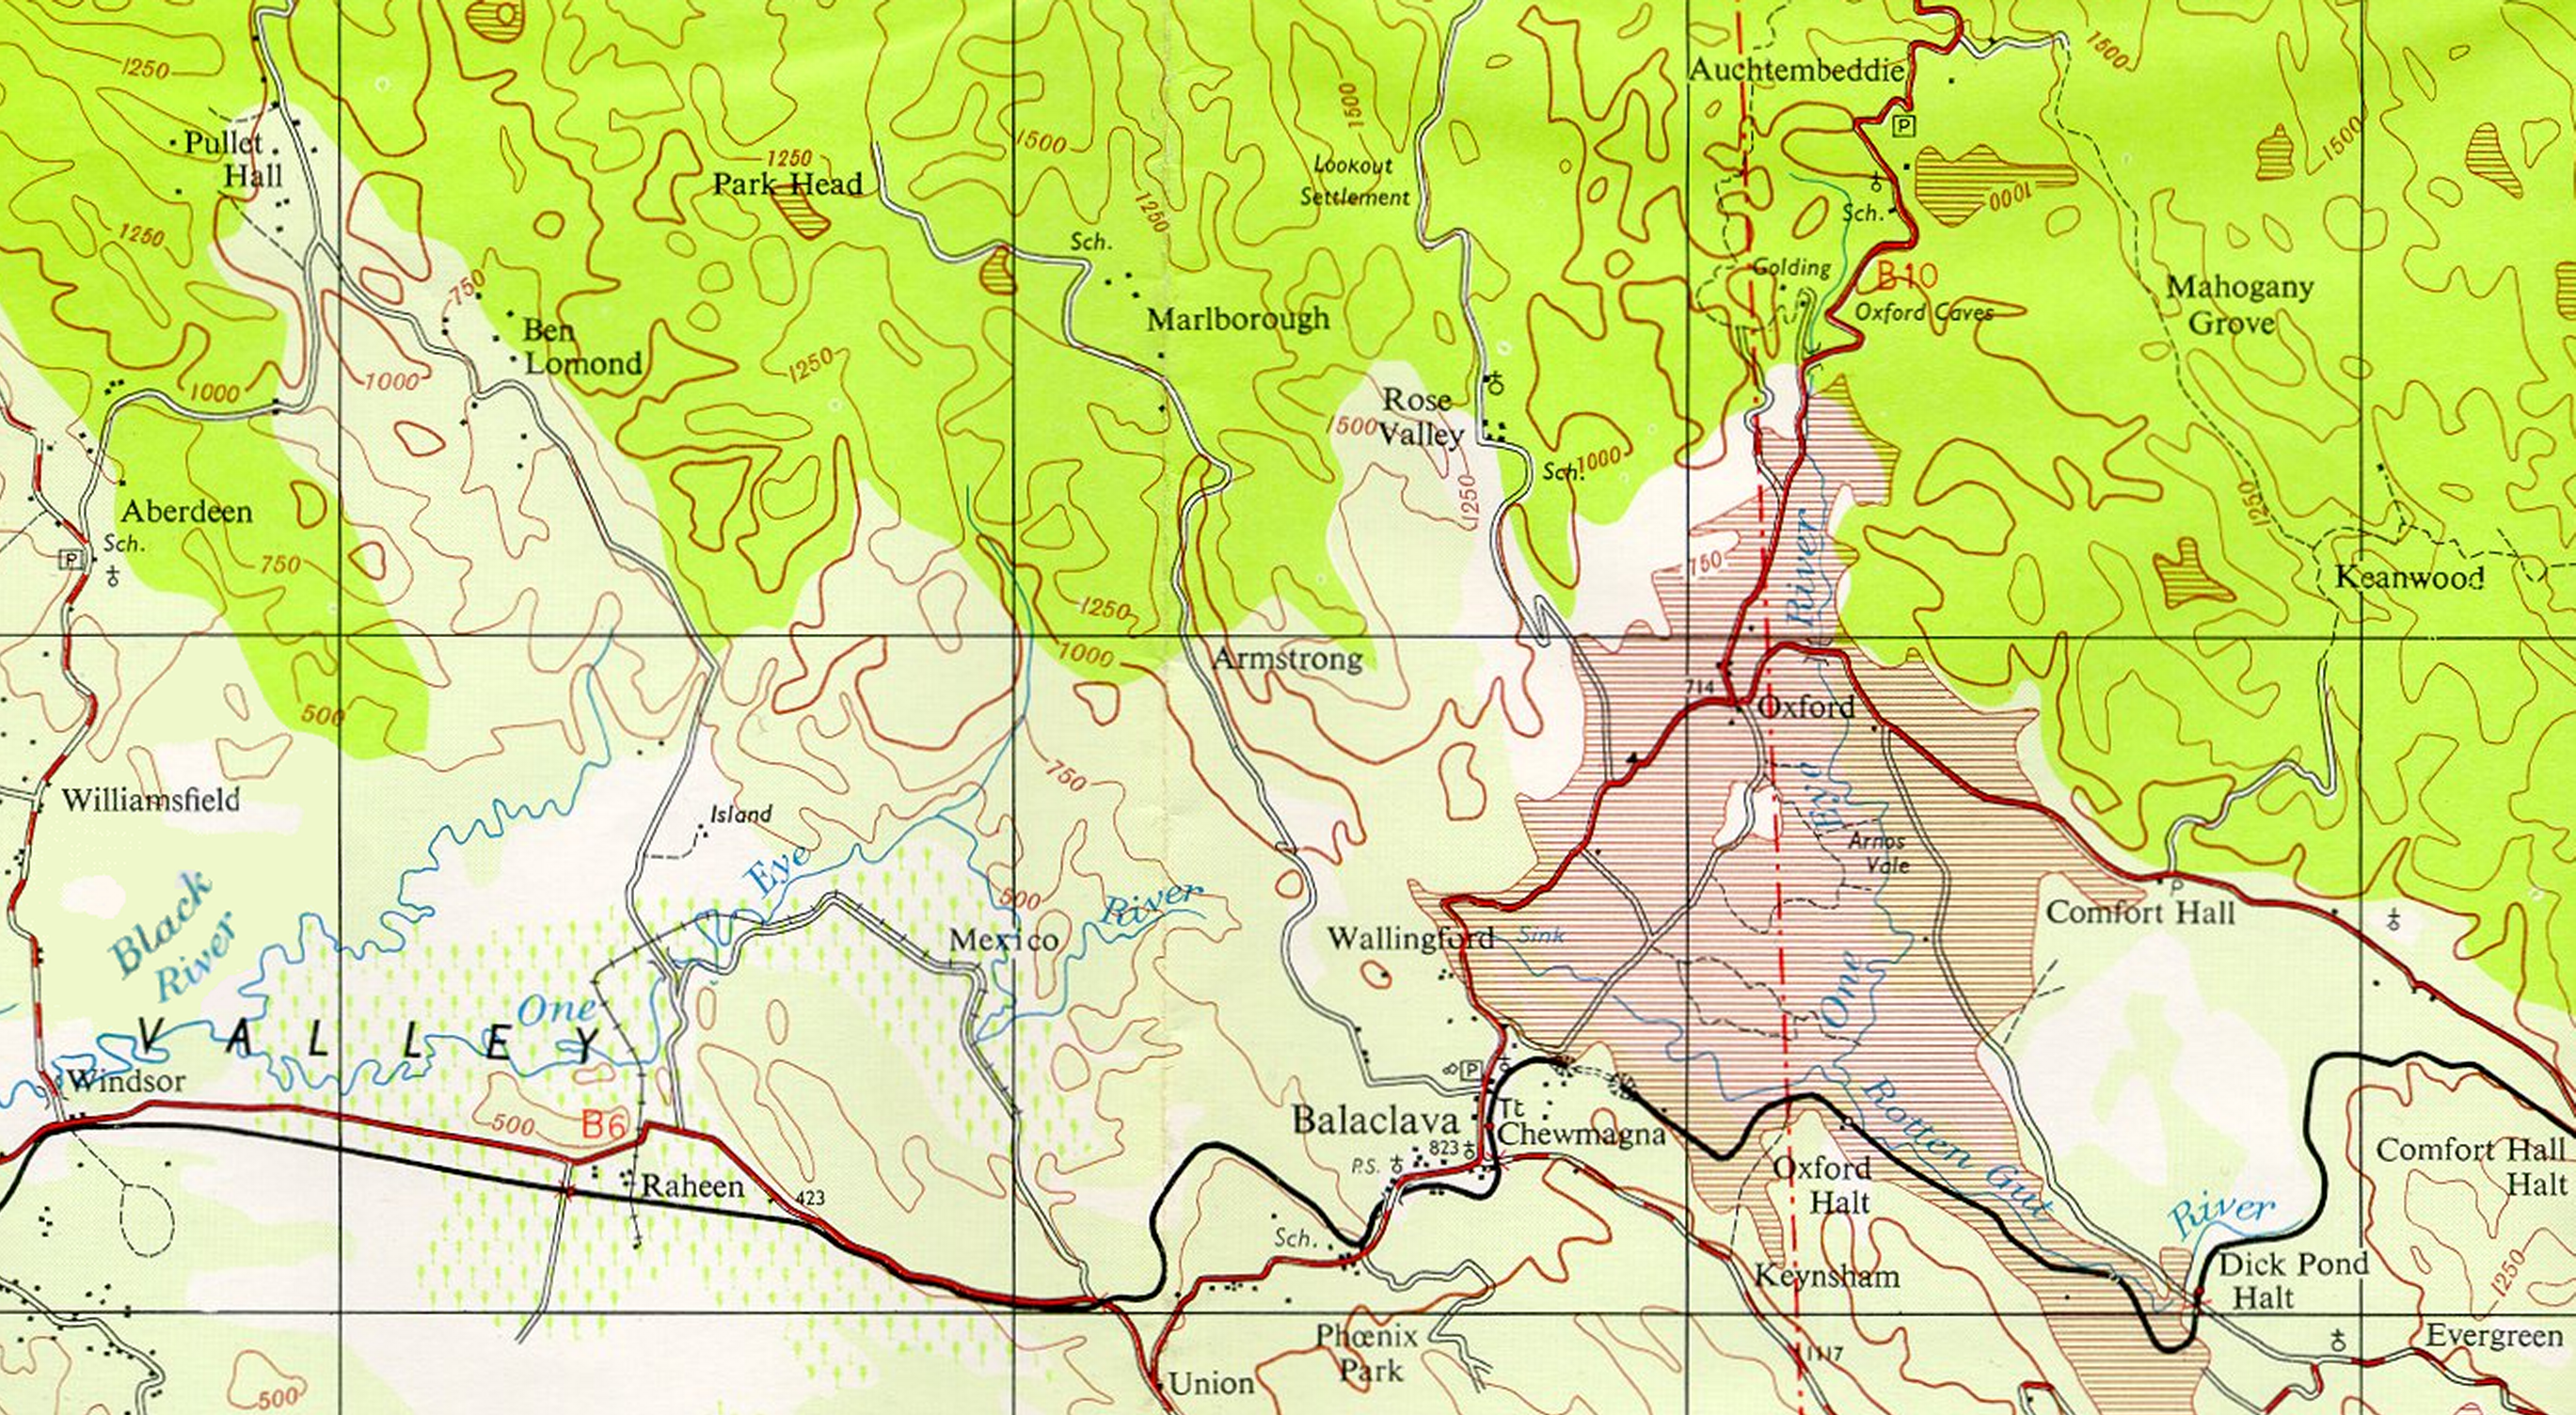 File extract showing one eye river from uk doos 50k map of jamaica